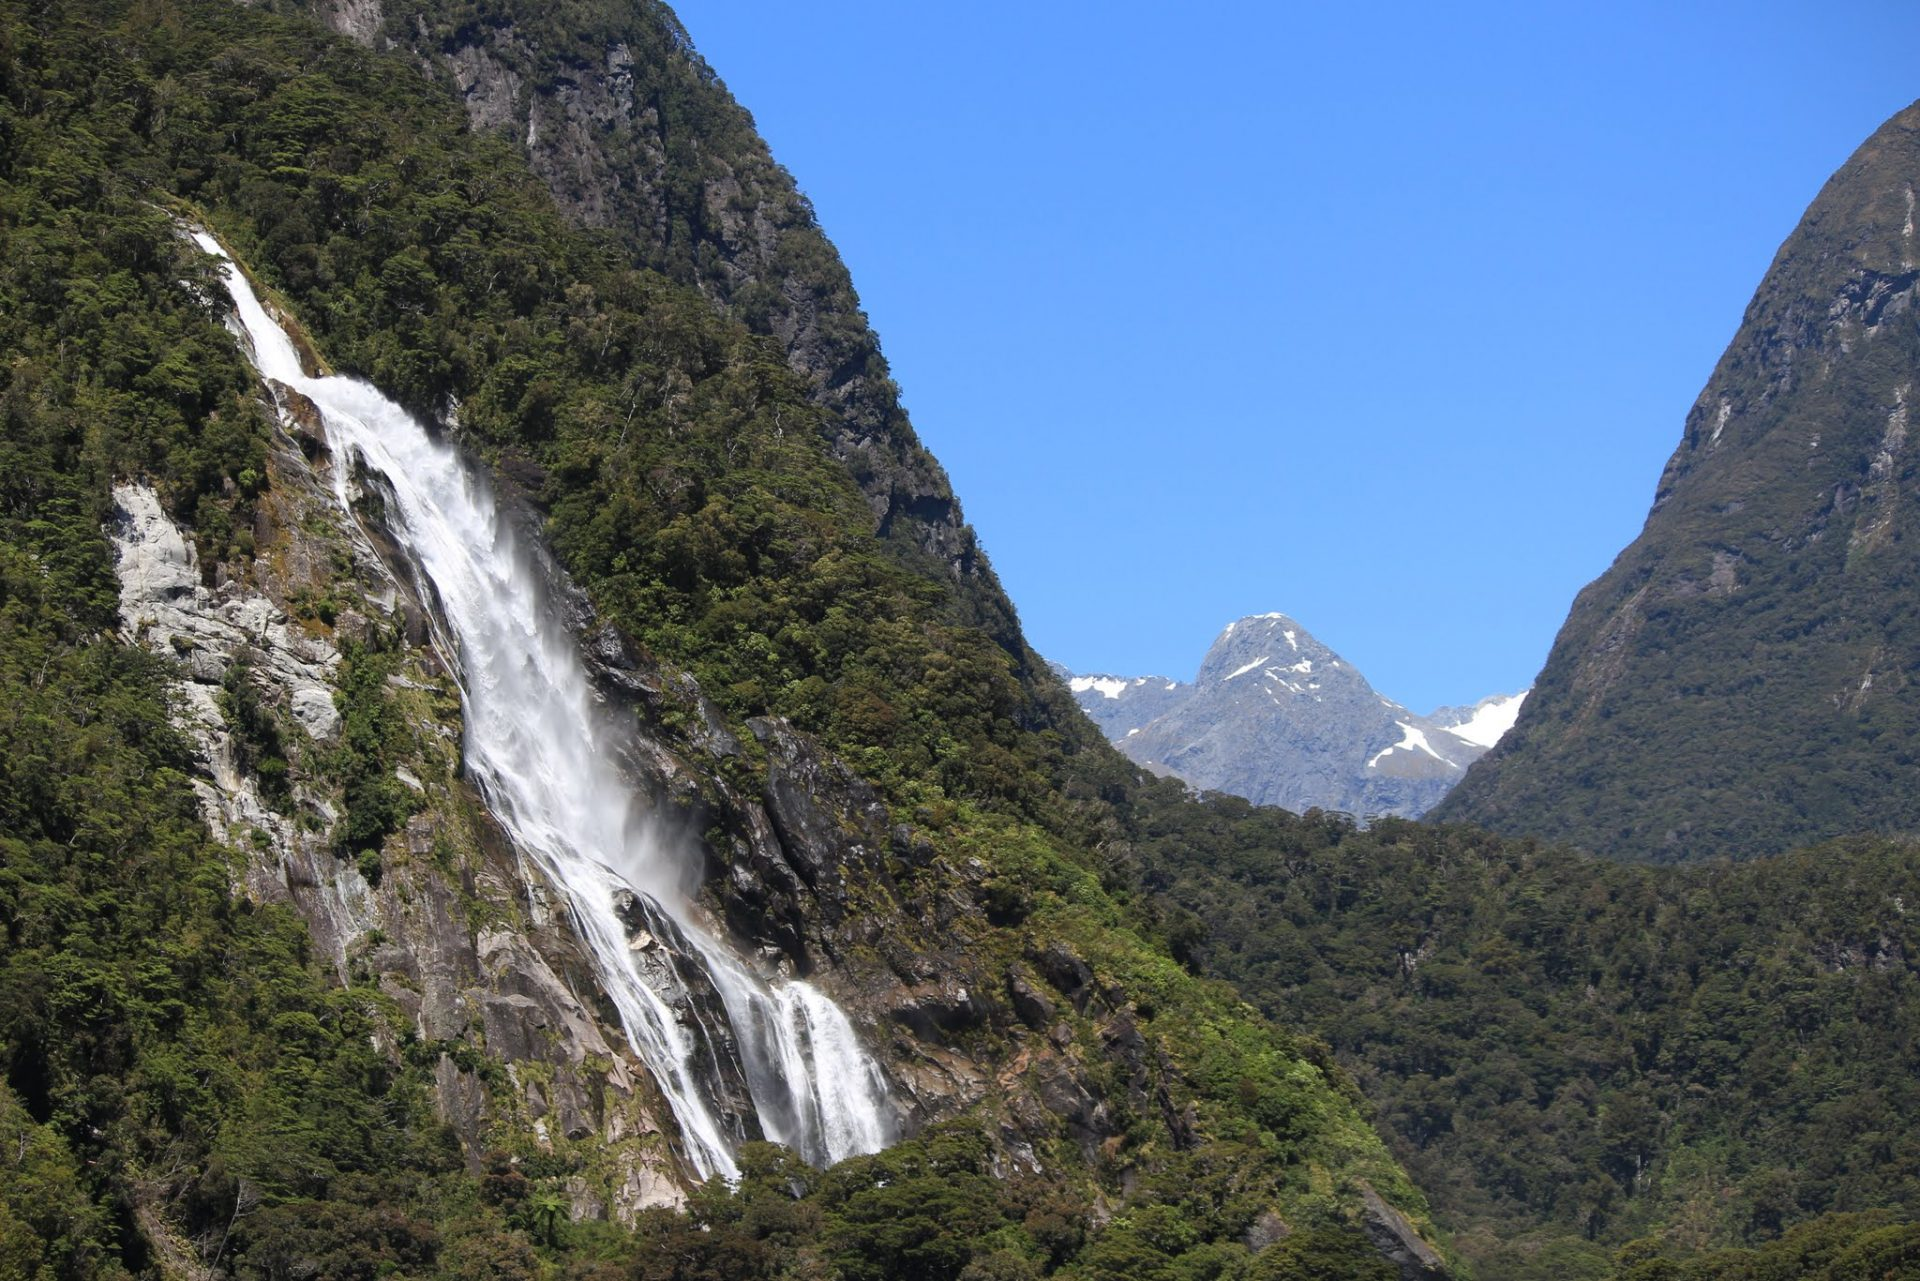 waterfalls mountains new zealand - Travel Contests: September 30th, 2020 - Sicily, Paris, Kyoto, & more